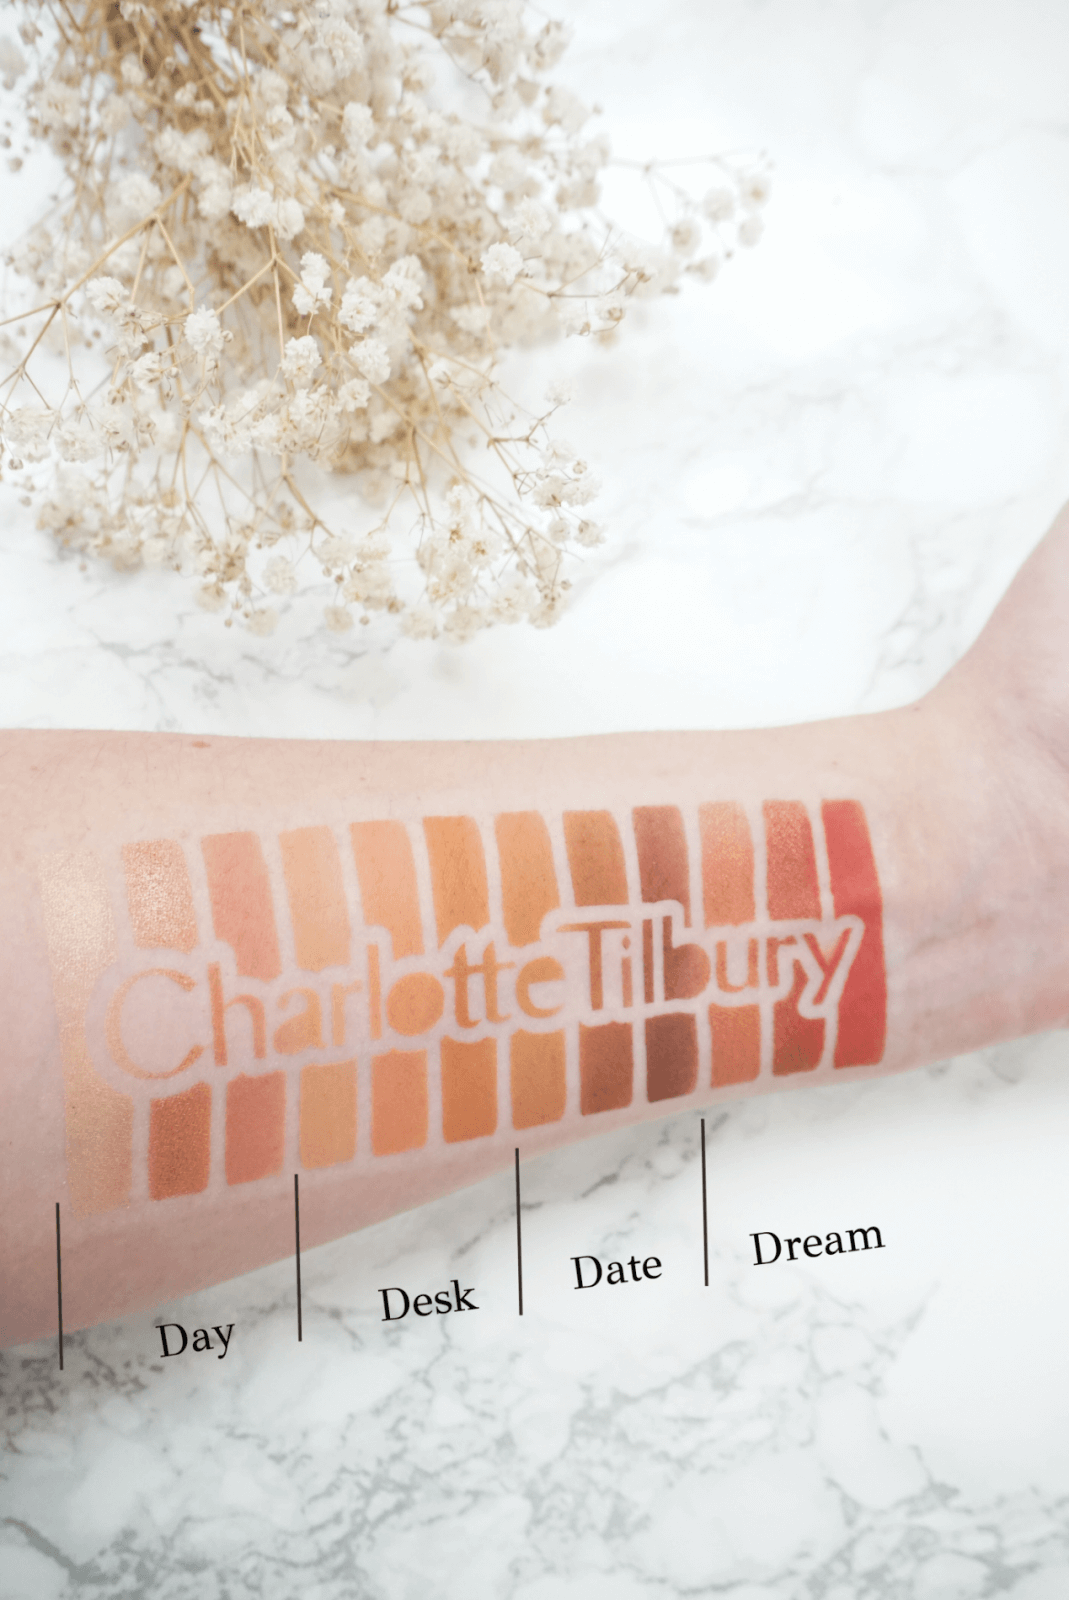 Luxurious Charlotte Tilbury Pillow Talk Eyeshadow Palette Review & Swatches ⋆ Beautymone